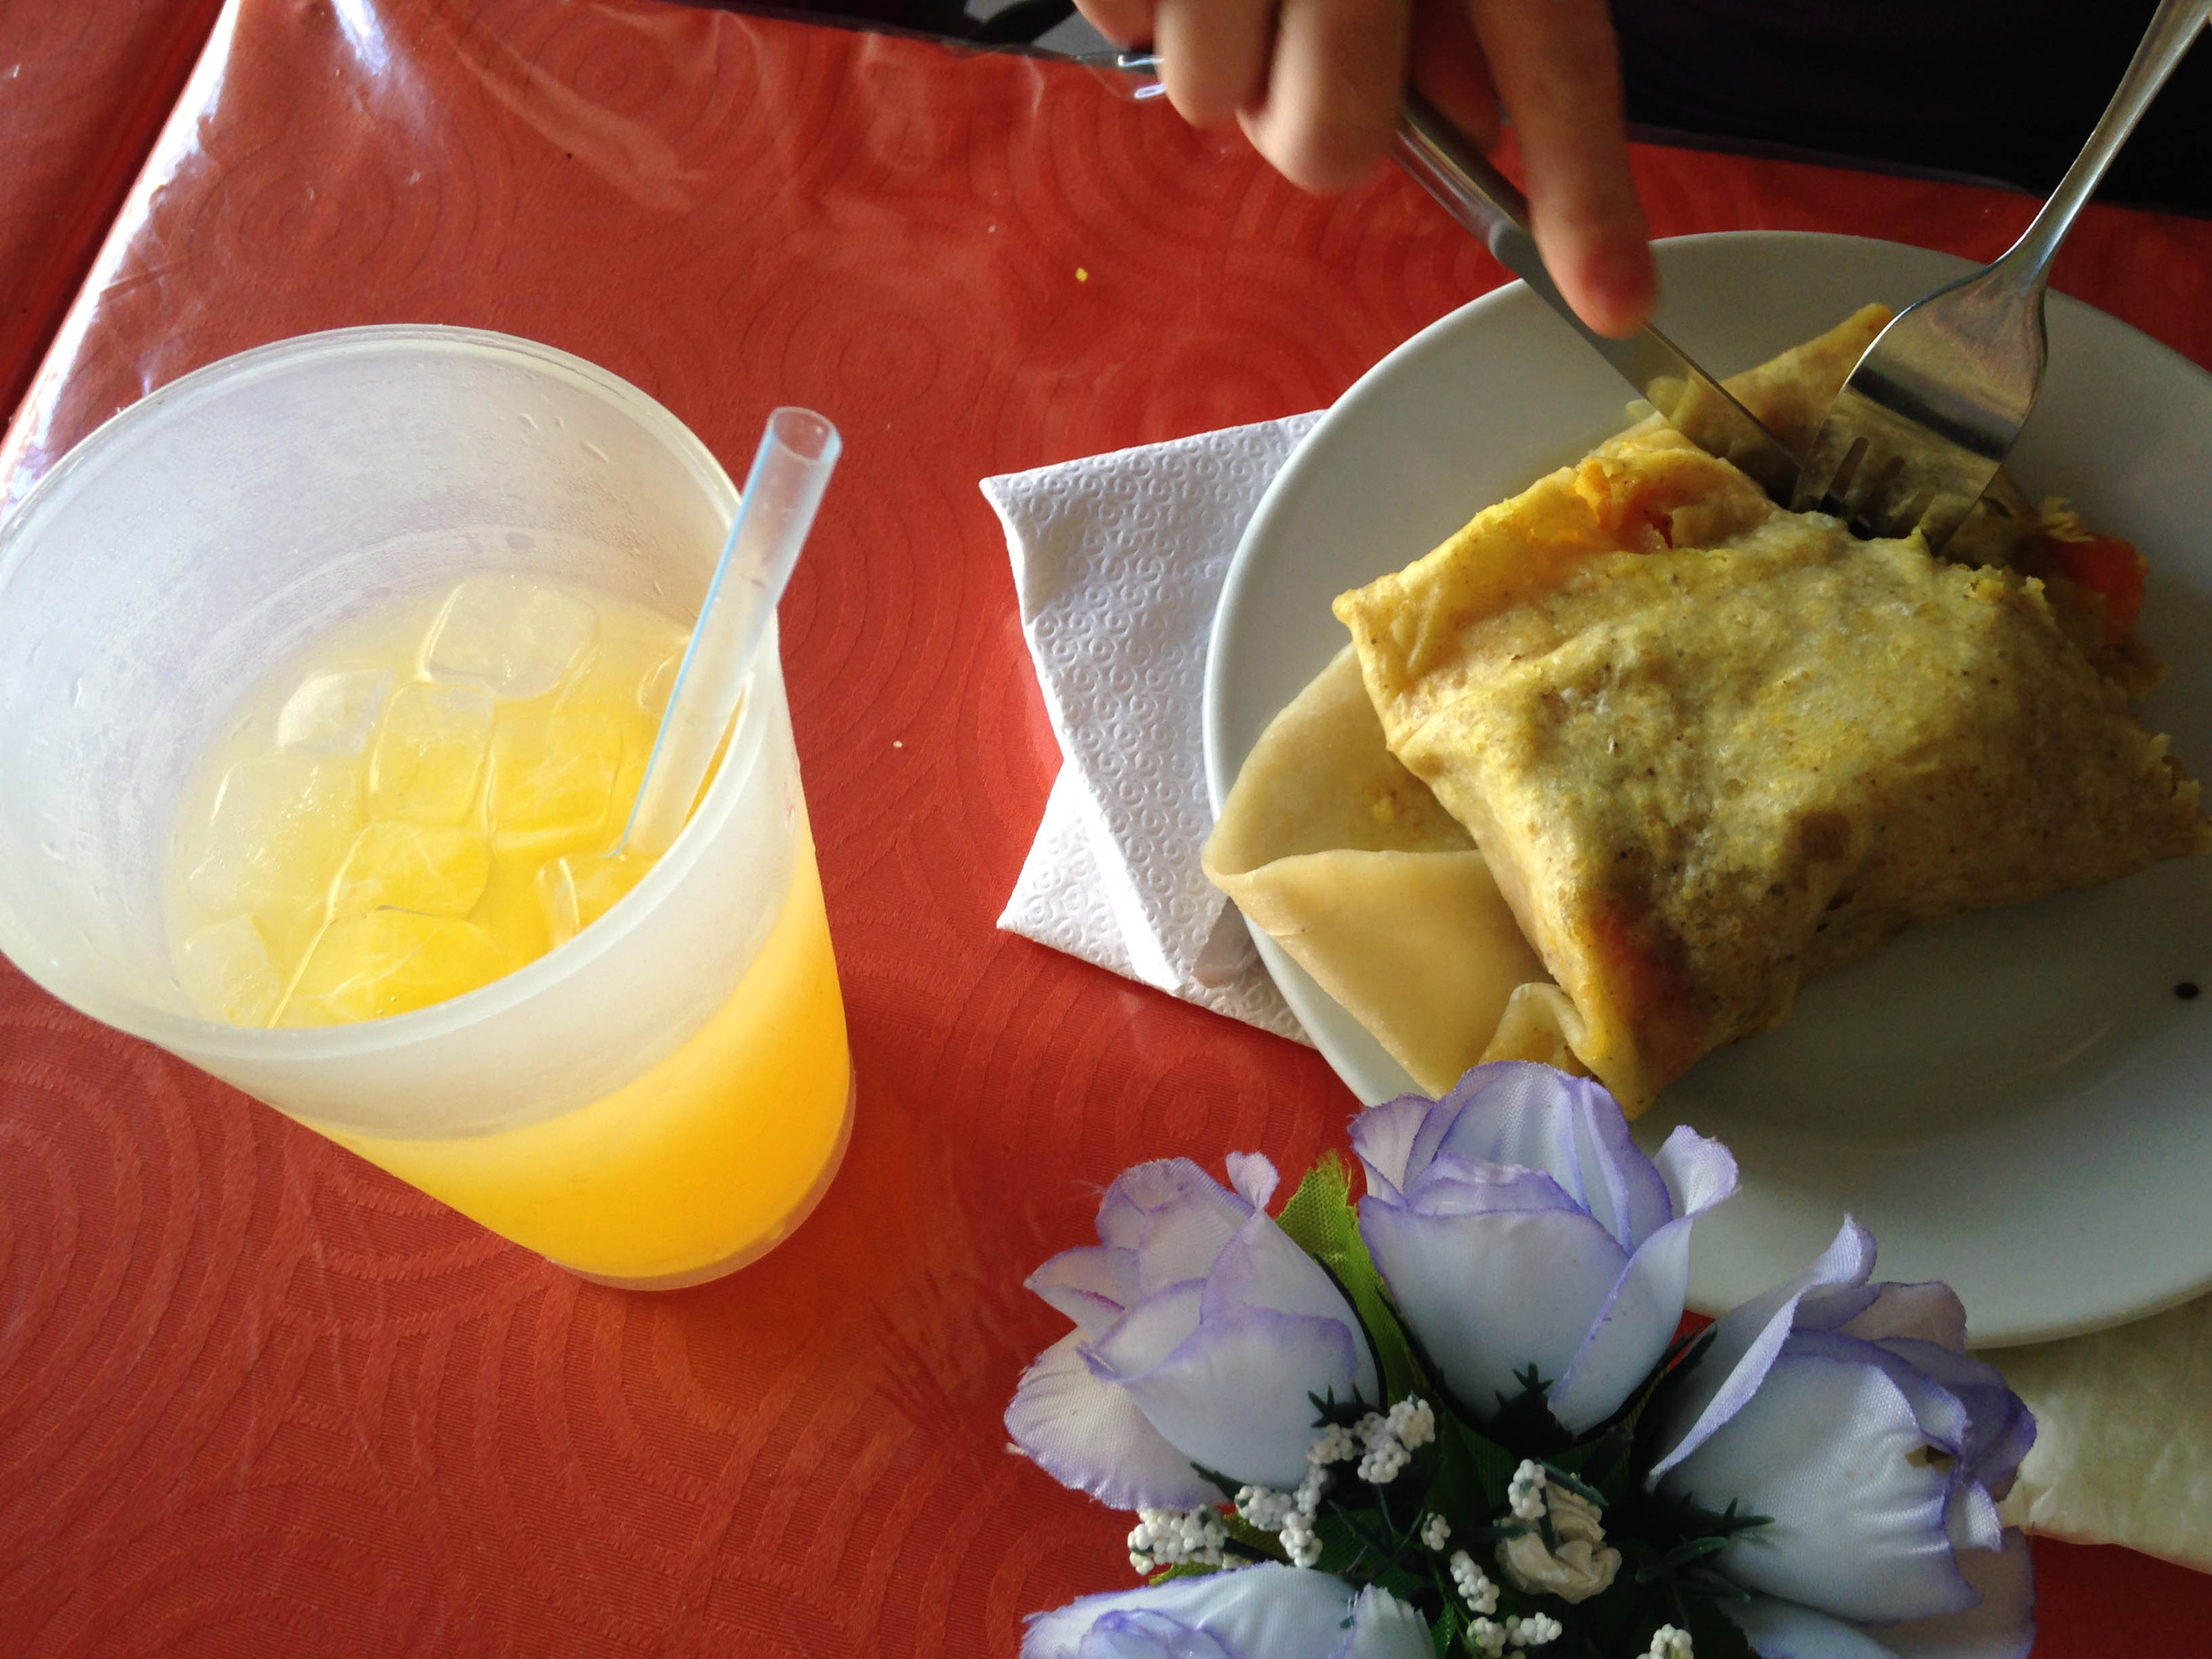 Mauby ( anise flavored drink , madefrom tree bark ) & Roti